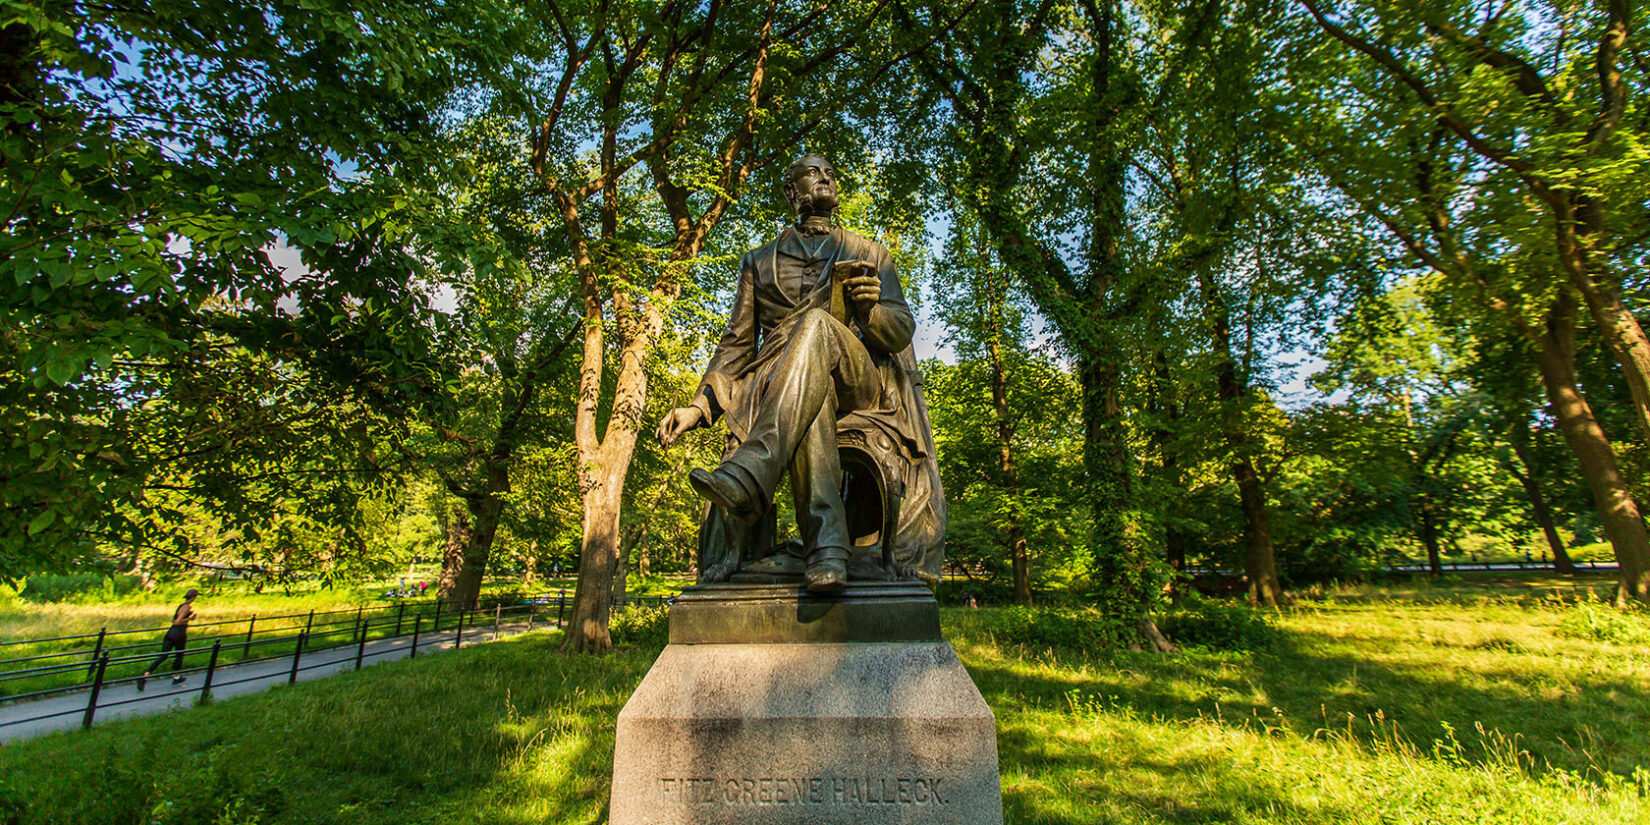 A wide-angle shot of the Fritz Green Halleck statue on the Mall